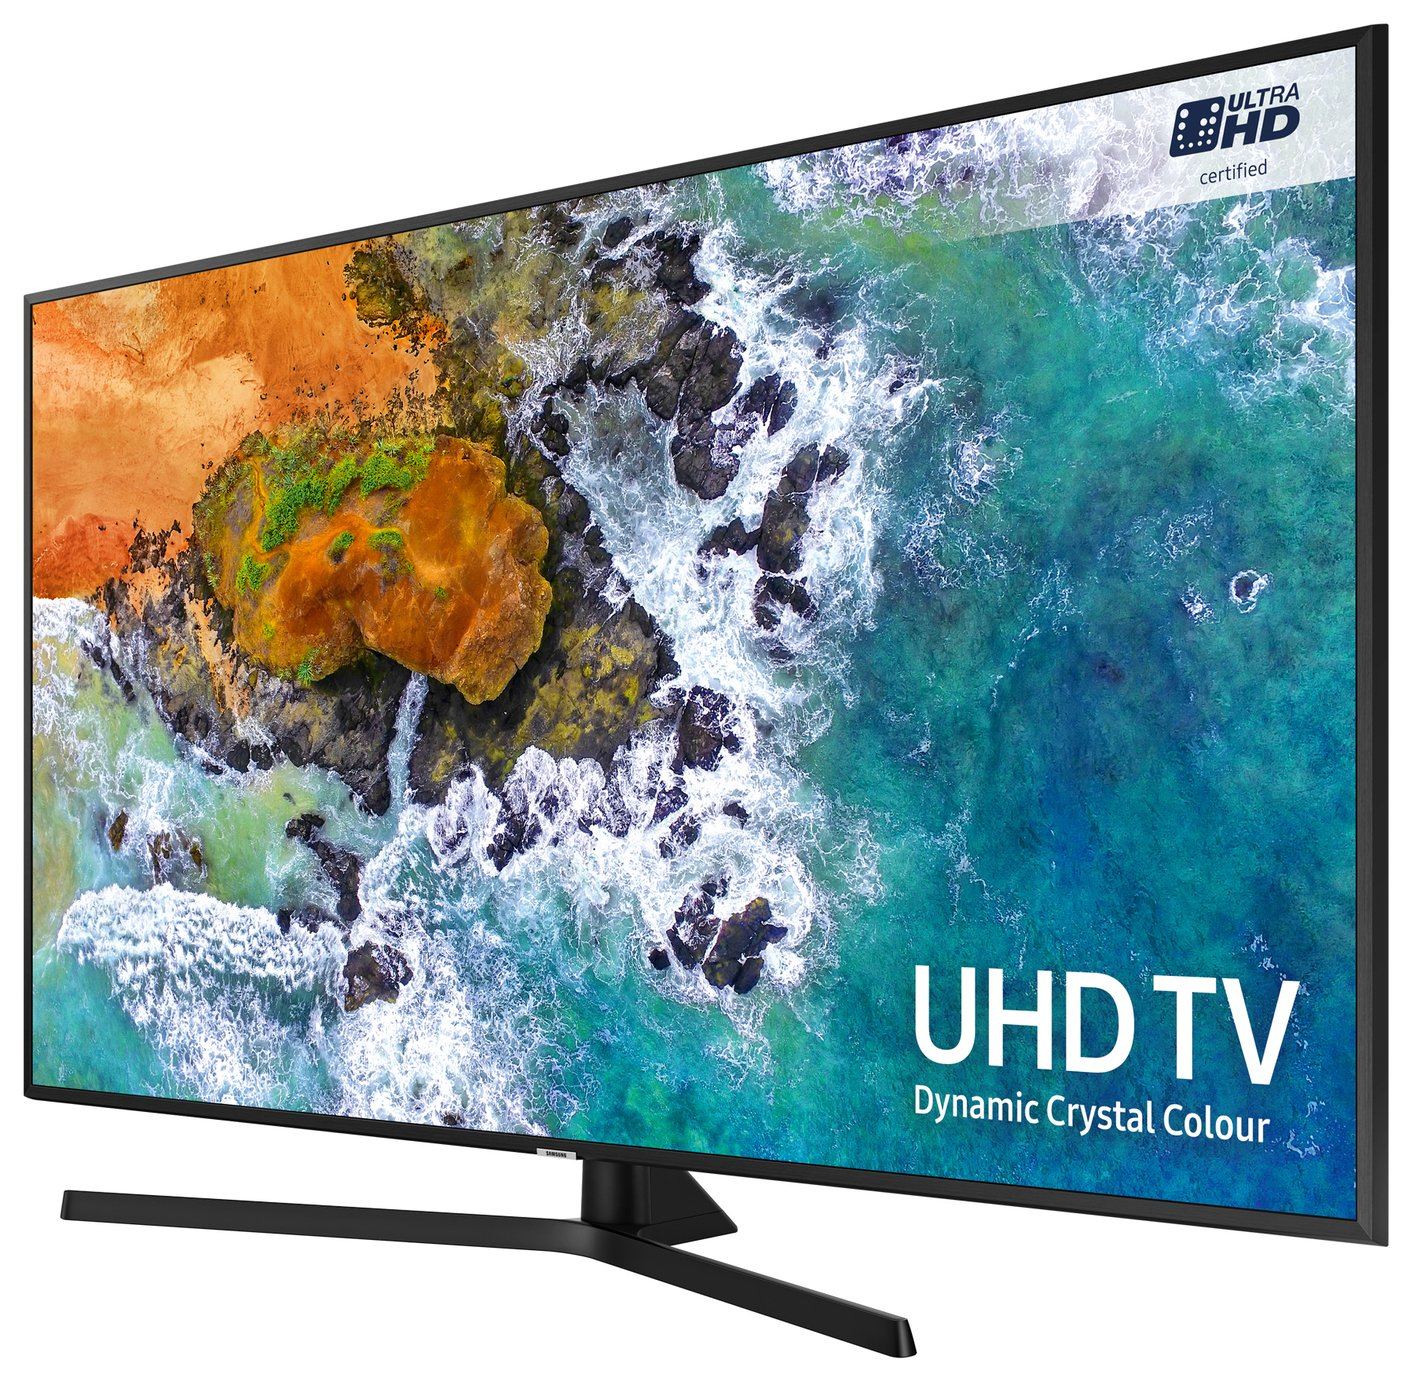 Buy Samsung 55nu7400 55 Inch 4k Uhd Smart Tv With Hdr Televisions